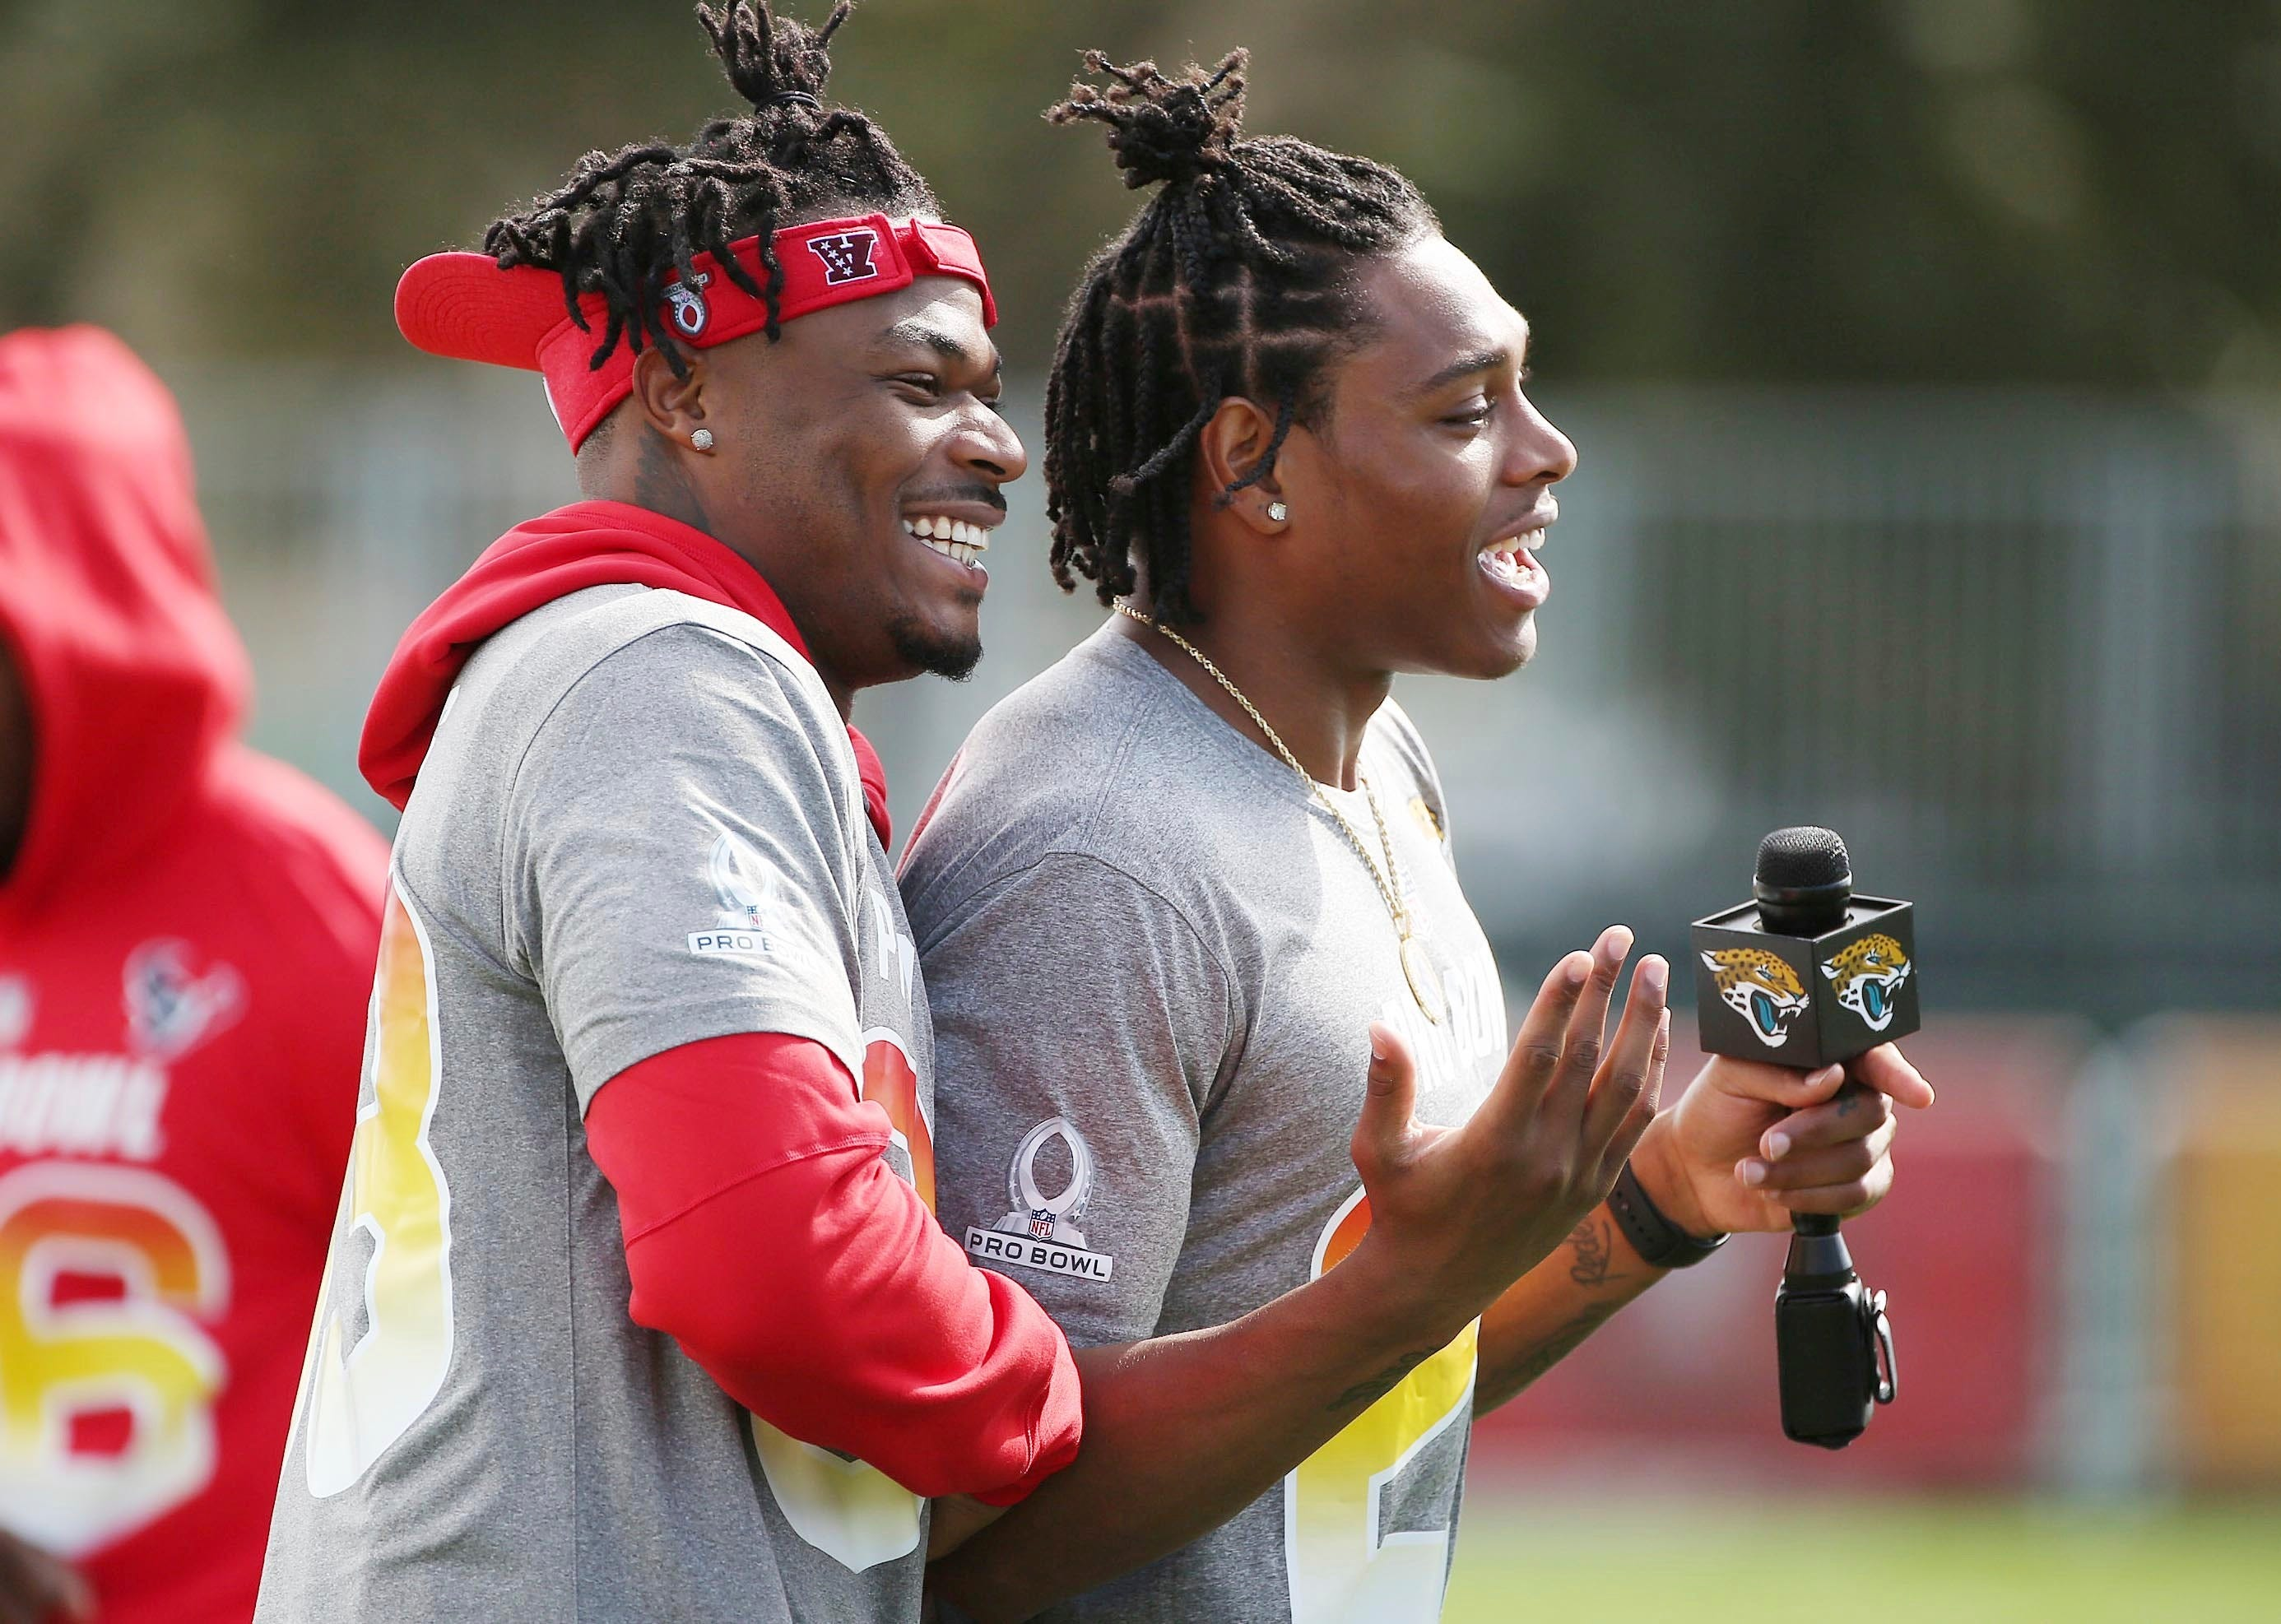 Pro Bowl becomes family affair for Pouncey twins, others